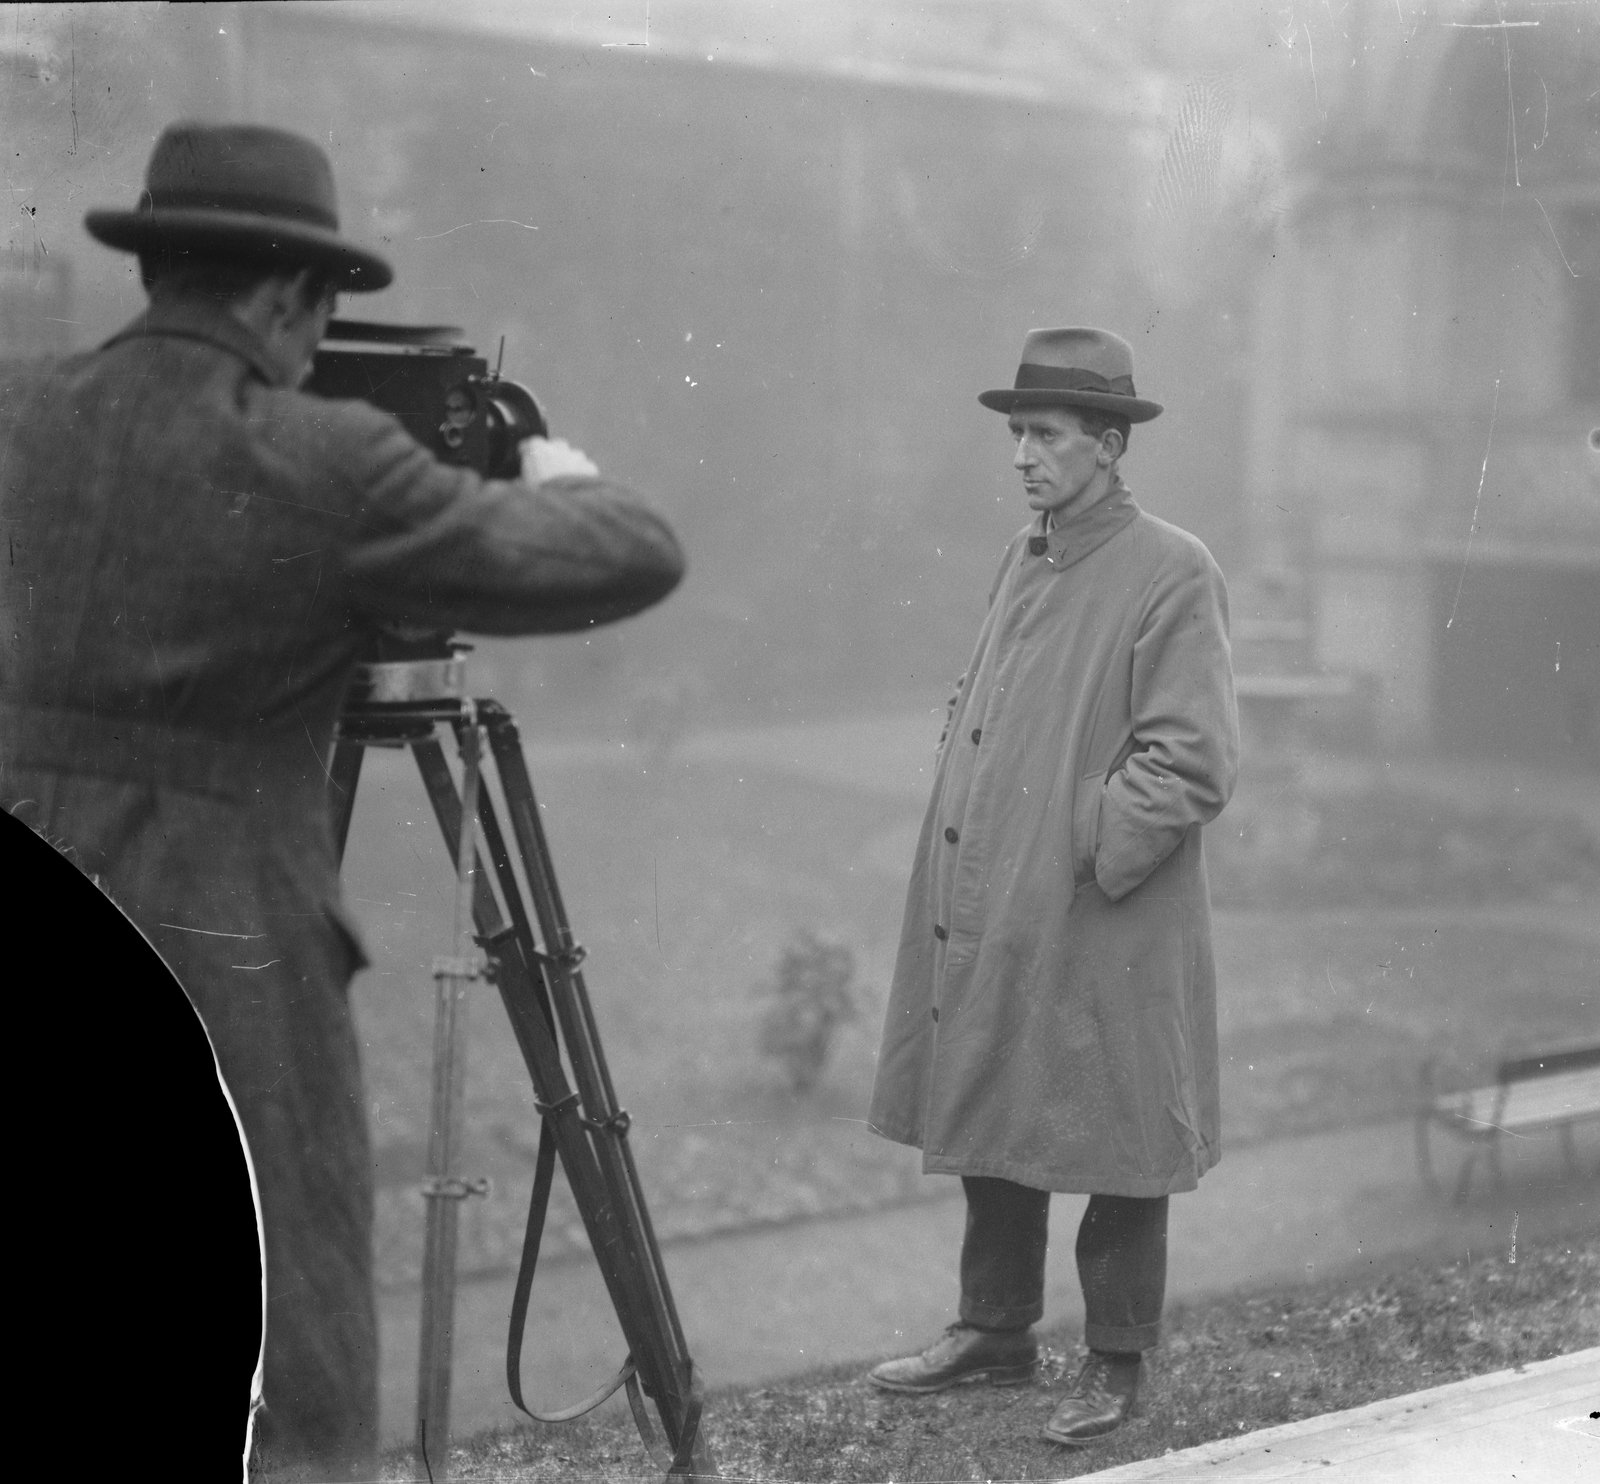 Image - SECRET NO MORE: IRA Chief of Staff Richard Mulcahy is filmed by Pathé News. (Credit: National Library of Ireland)